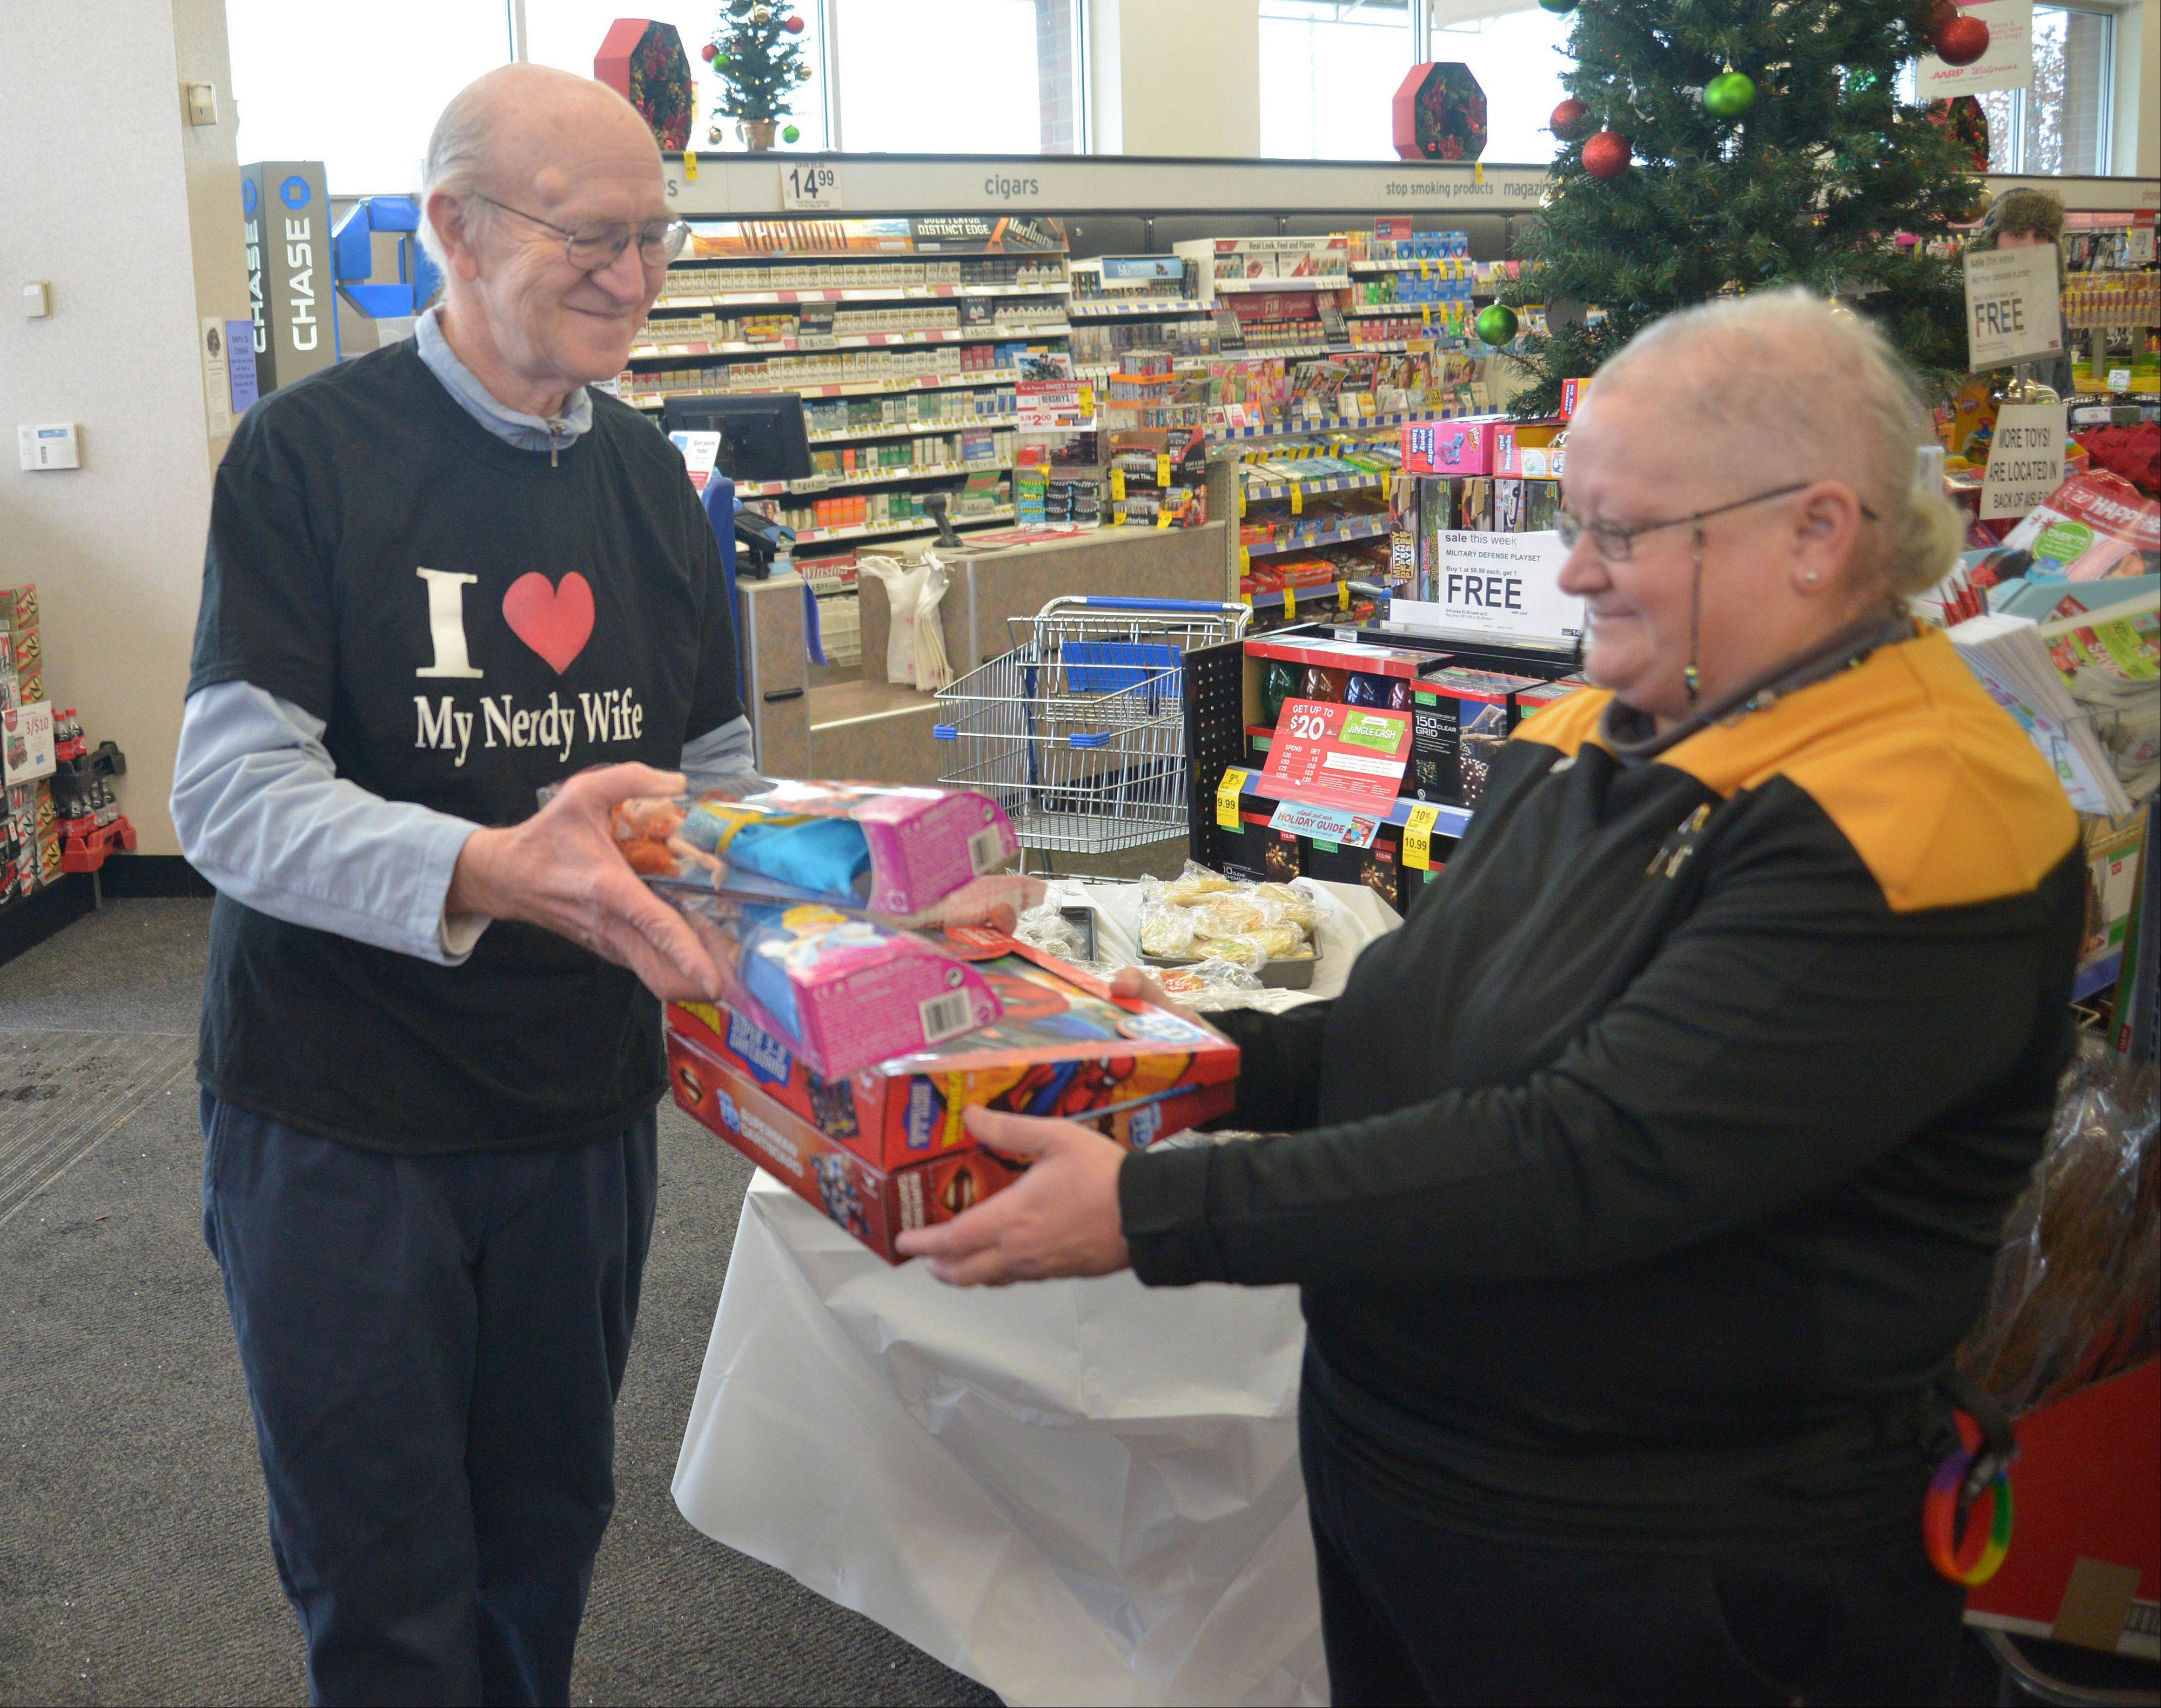 Richardson Knutson hands Elizabeth Rahuba gifts Saturday. Star Trek fans who are members of Klingon Assault Group, Klingon Armada International and the USS Chicago, held a Toys for Tots event from 10 a.m. to 2 p.m. at Walgreens in Naperville.